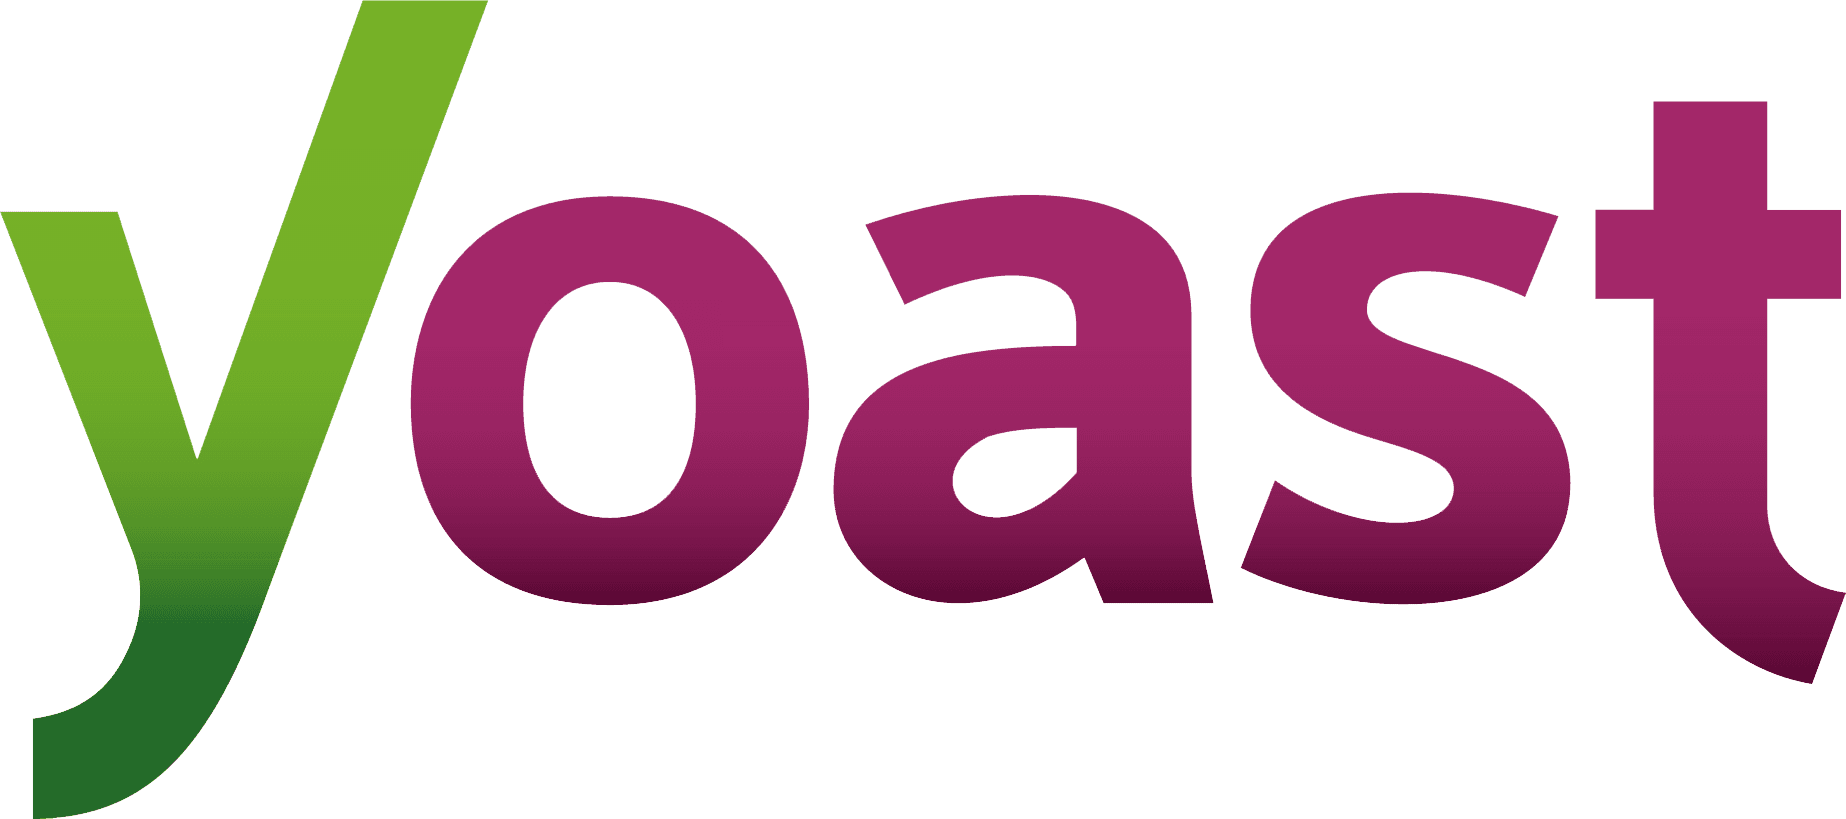 Yoast SEO to maximize your organic rank and search results.